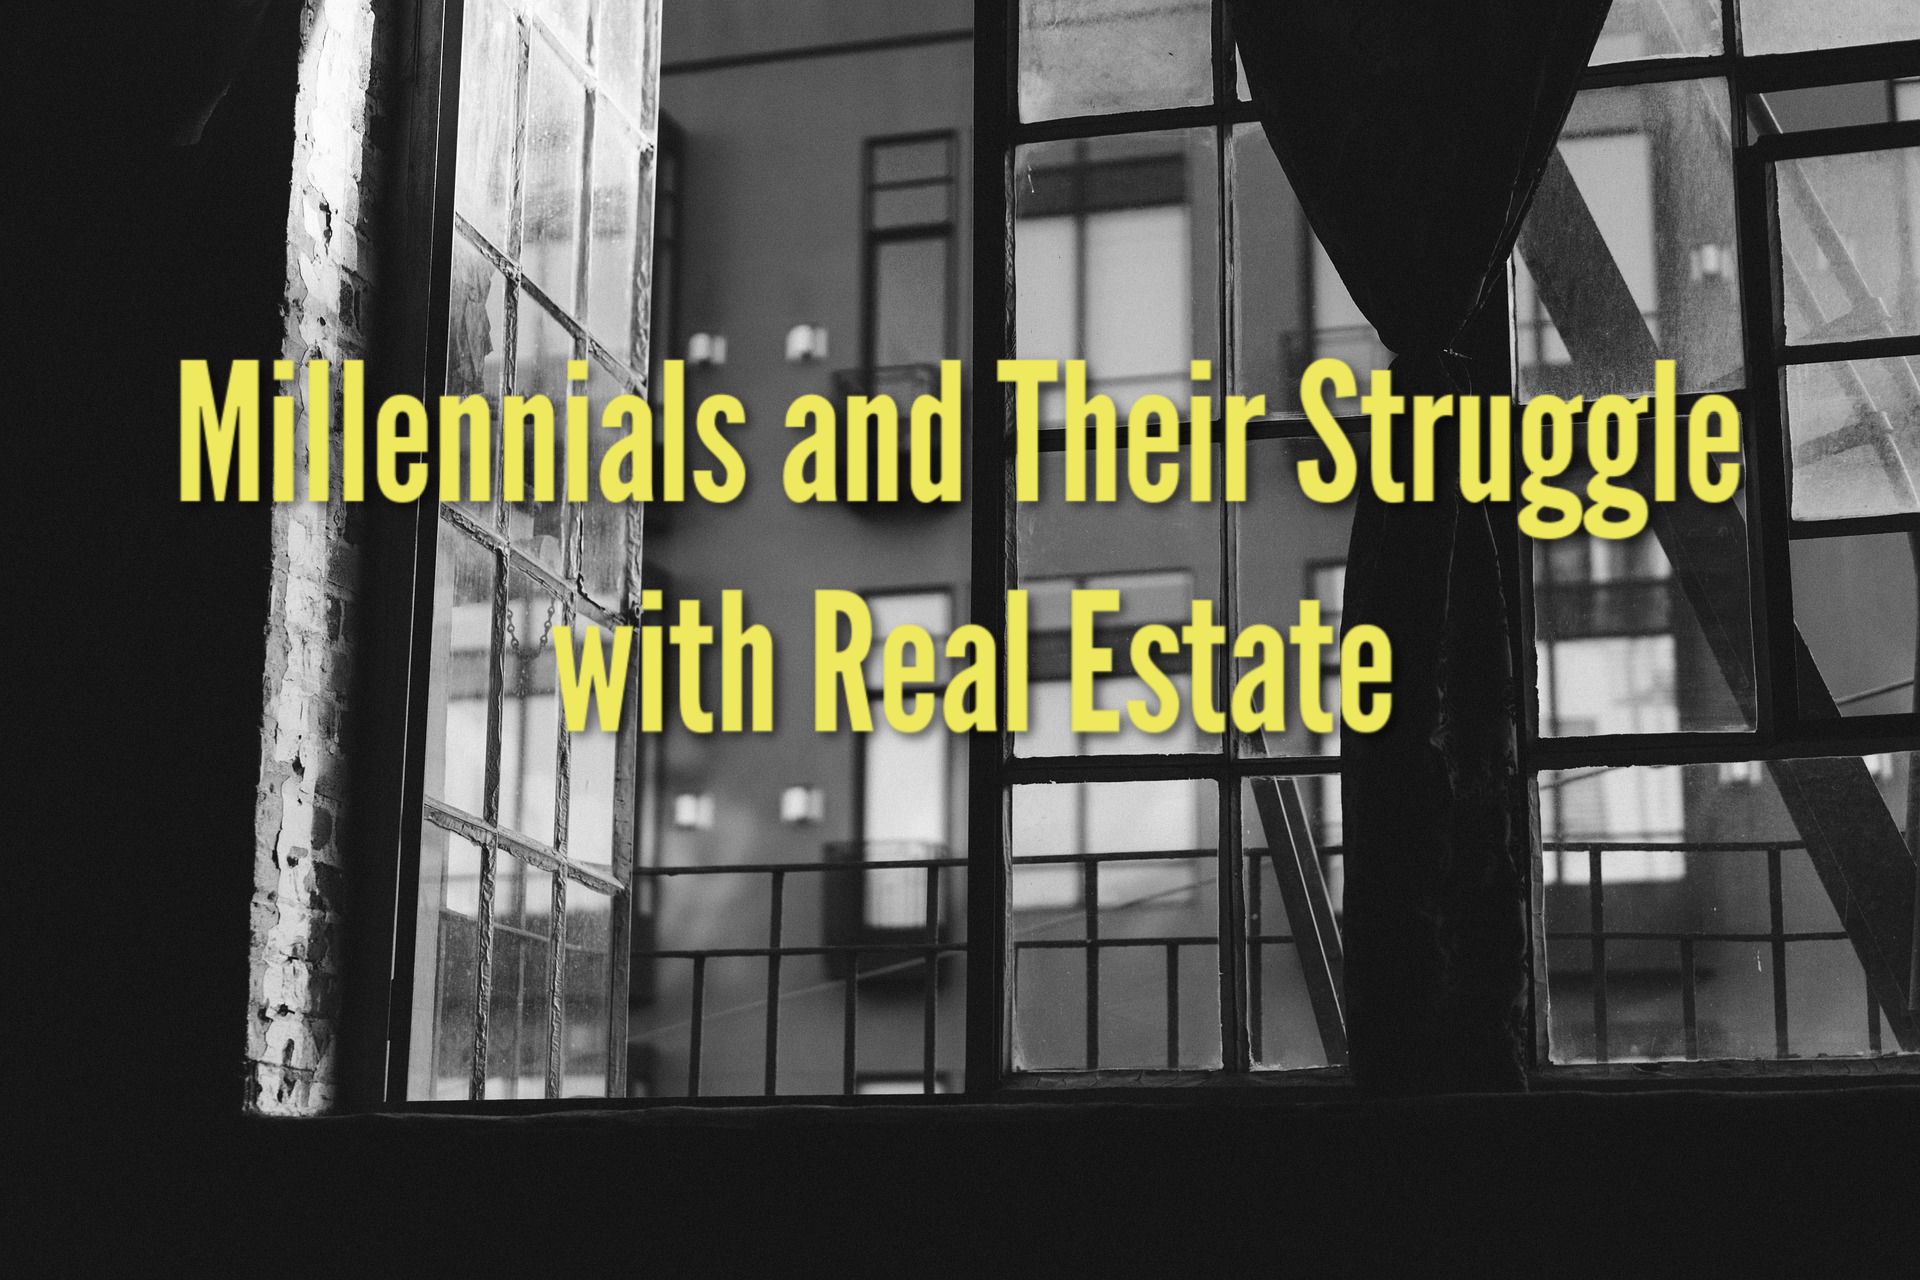 Millennials and Their Struggle with Real Estate